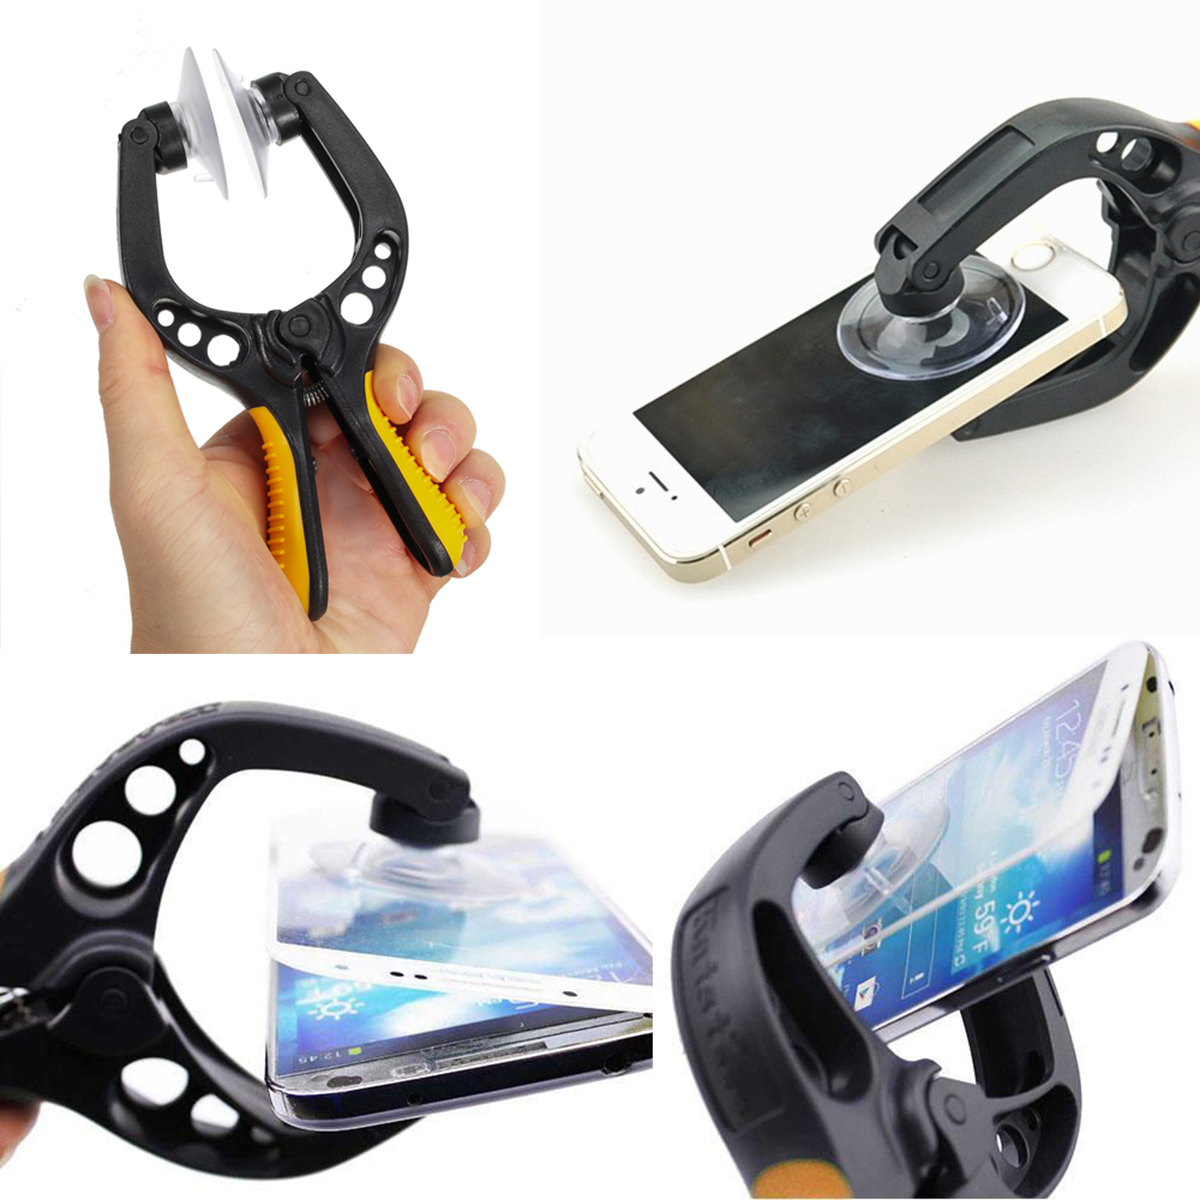 LCD Screen Opening Pliers Repair Tool with Super Strong Suction Cup Platform for Cell Phone